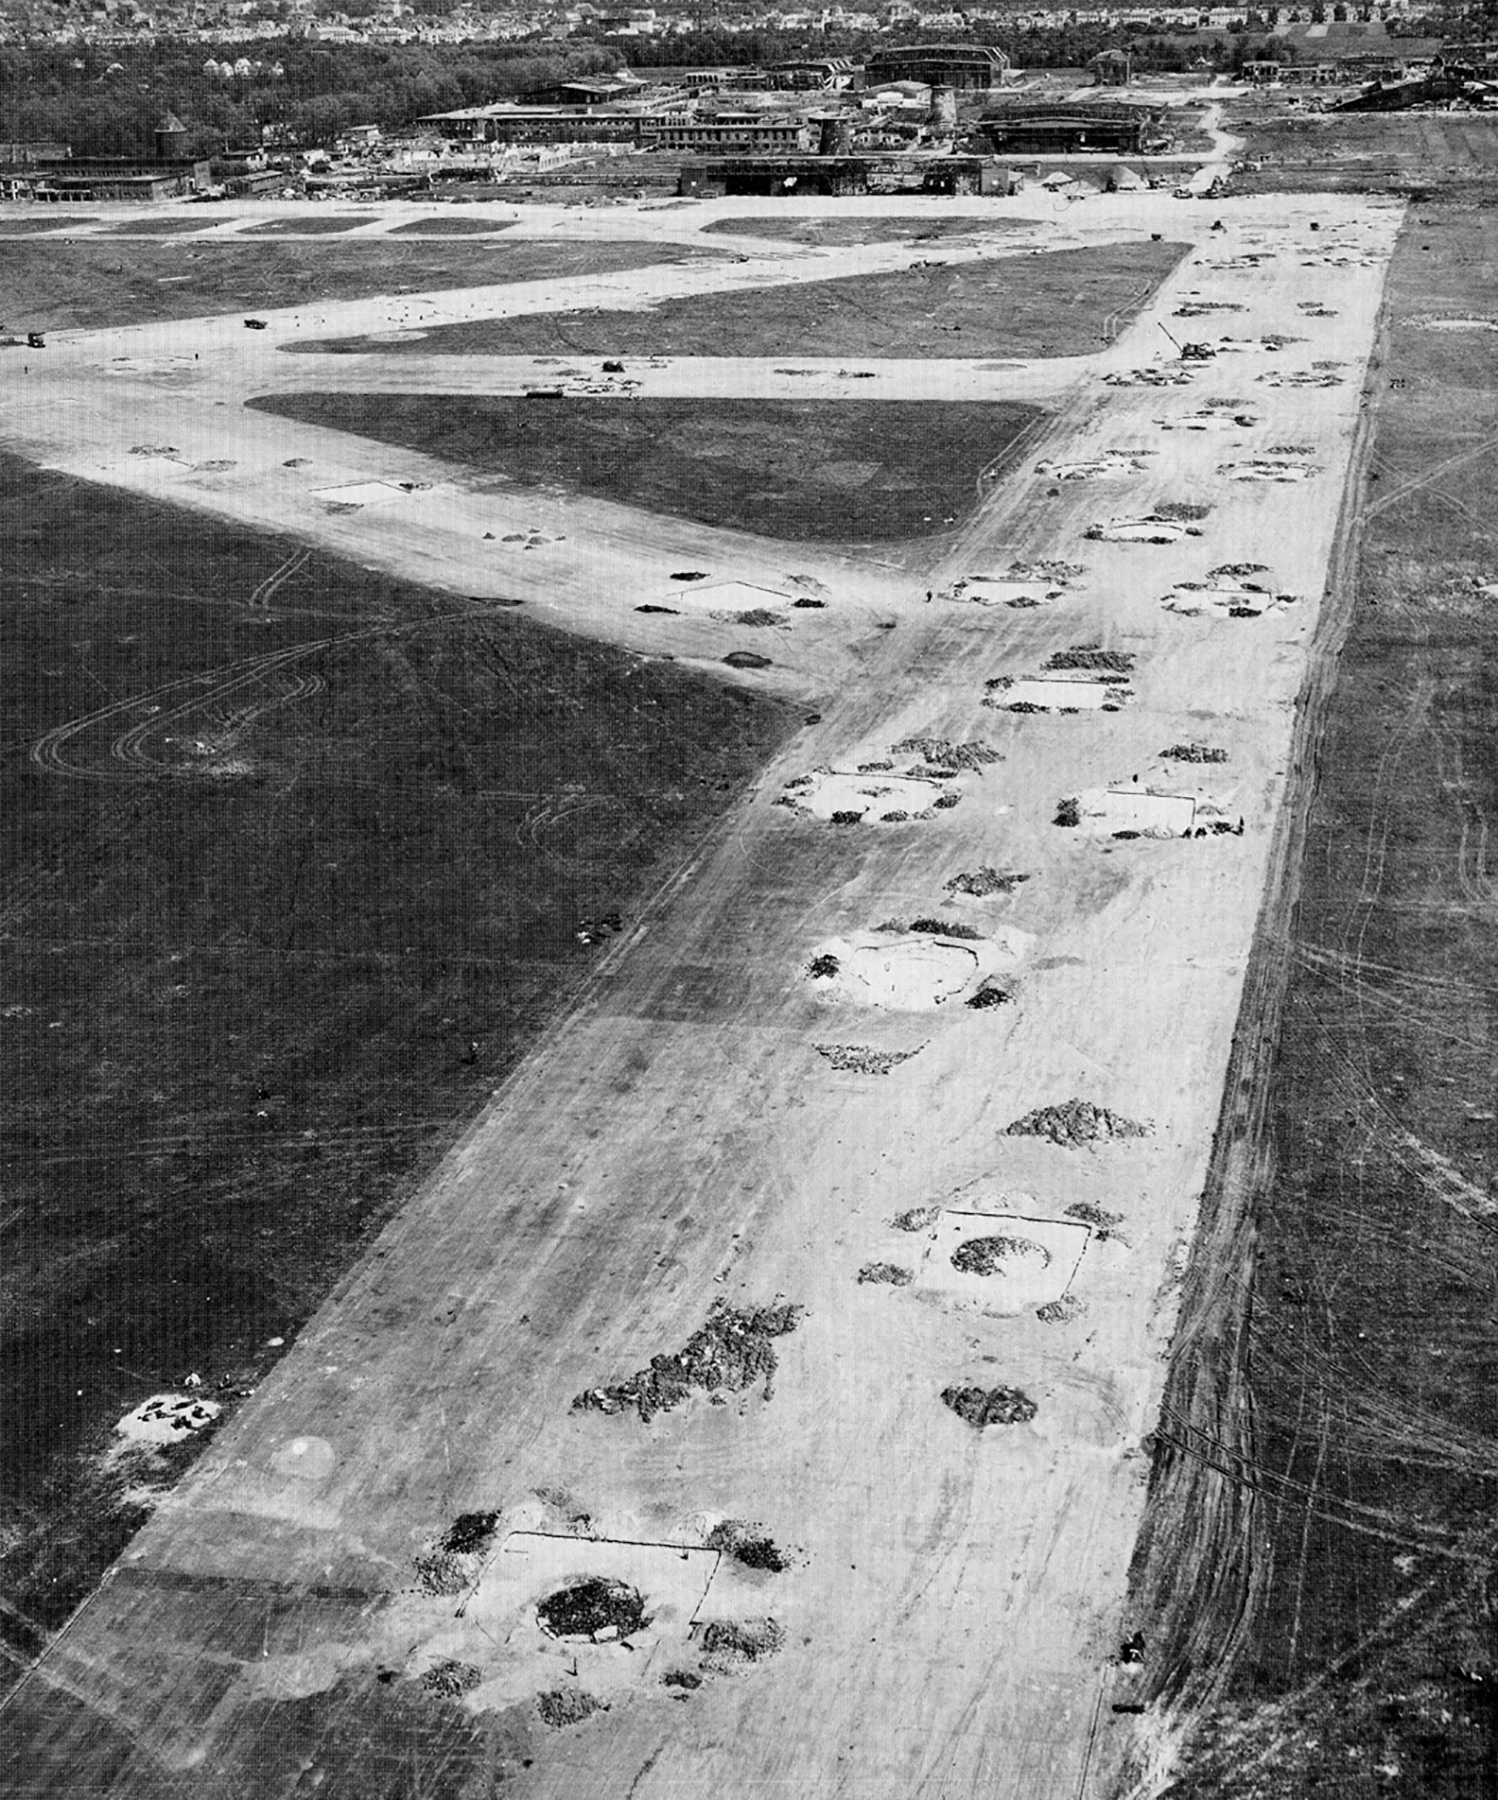 USAAAF 7PG aerial recon photo to Bremen 01